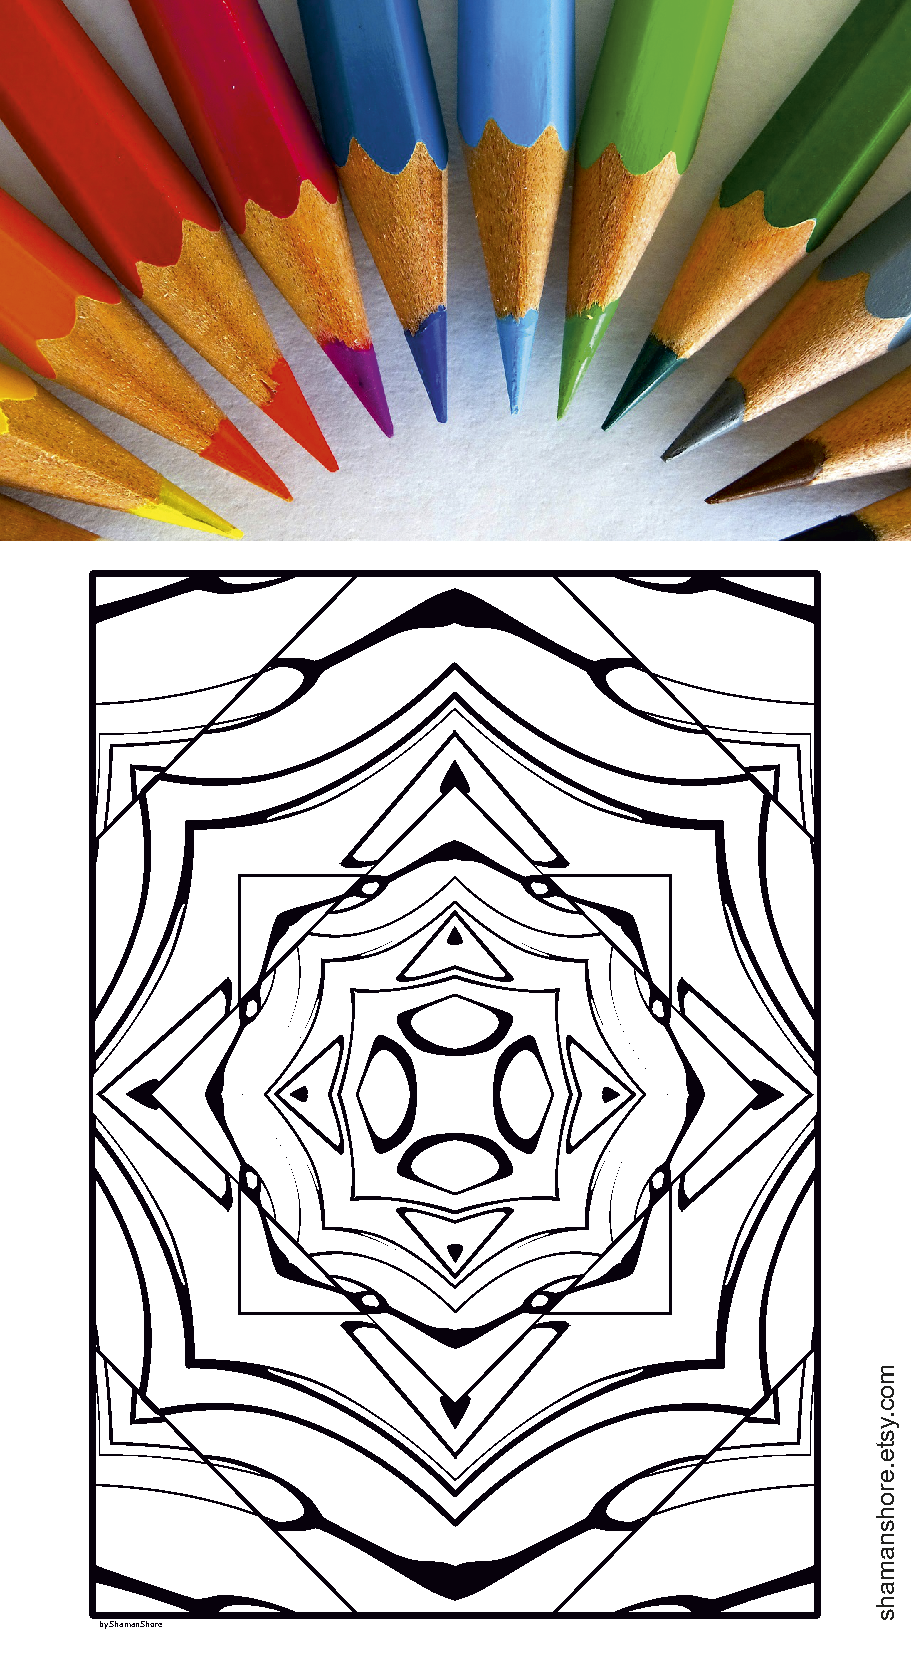 Pdf Adult Coloring Book 20 Abstract Kaleidoscope Coloring Pages For